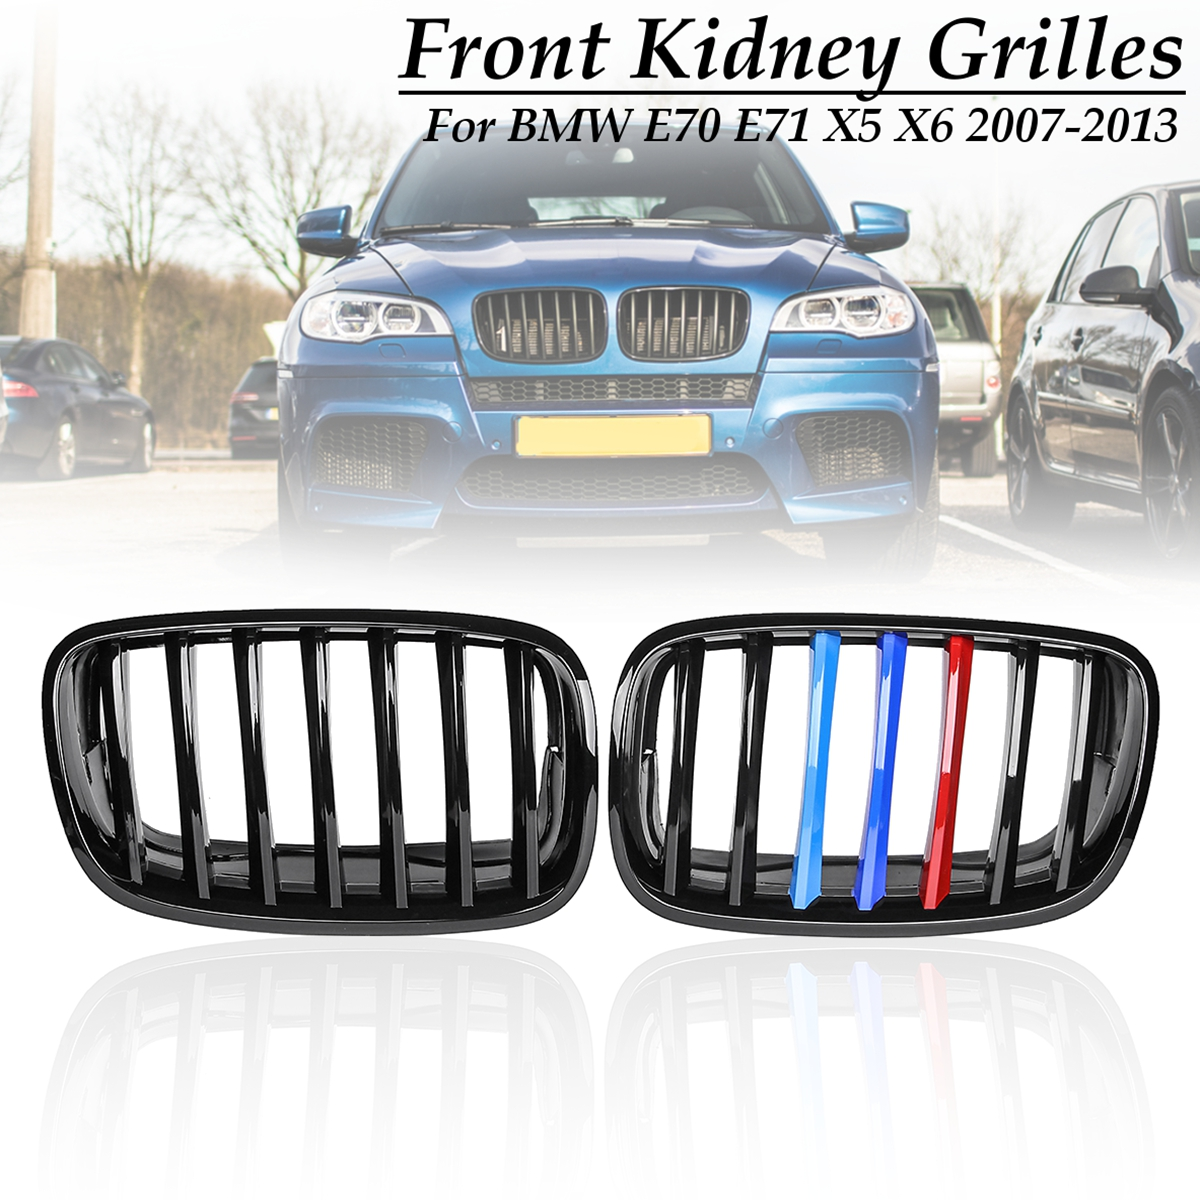 Gloss Black M-Color Slat Front Kidney Grill Grilles for BMW E70 E71 X5 X6 2007 2008 2009 2010 2011 2012 2013 2007 2013 kidney shape matte black abs plastic e70 e71 original style x5 x6 front racing grill grille for bmw e70 x5 bmw x6